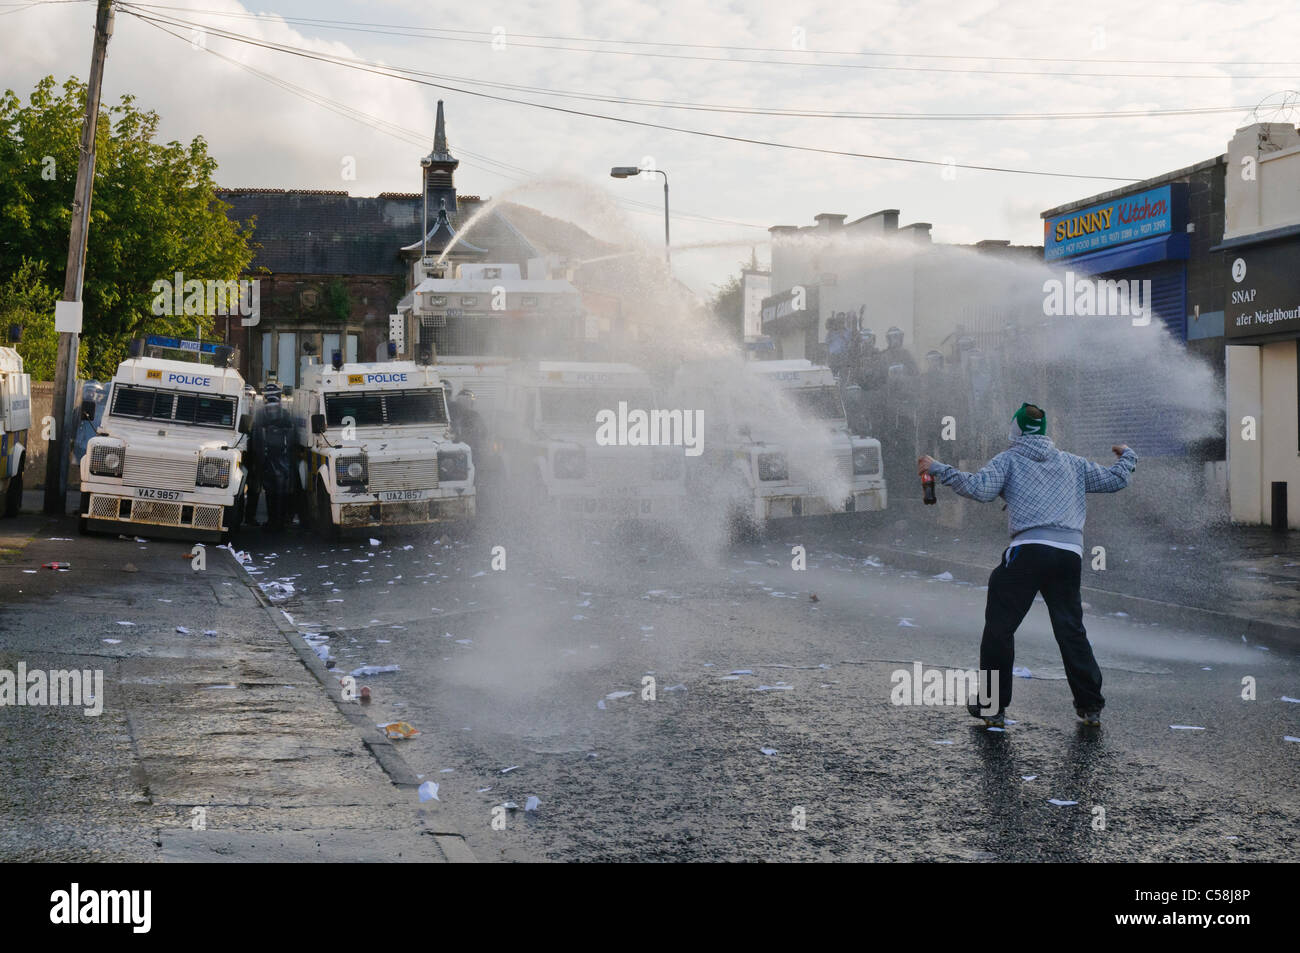 Rioter confronts police water cannon - Stock Image